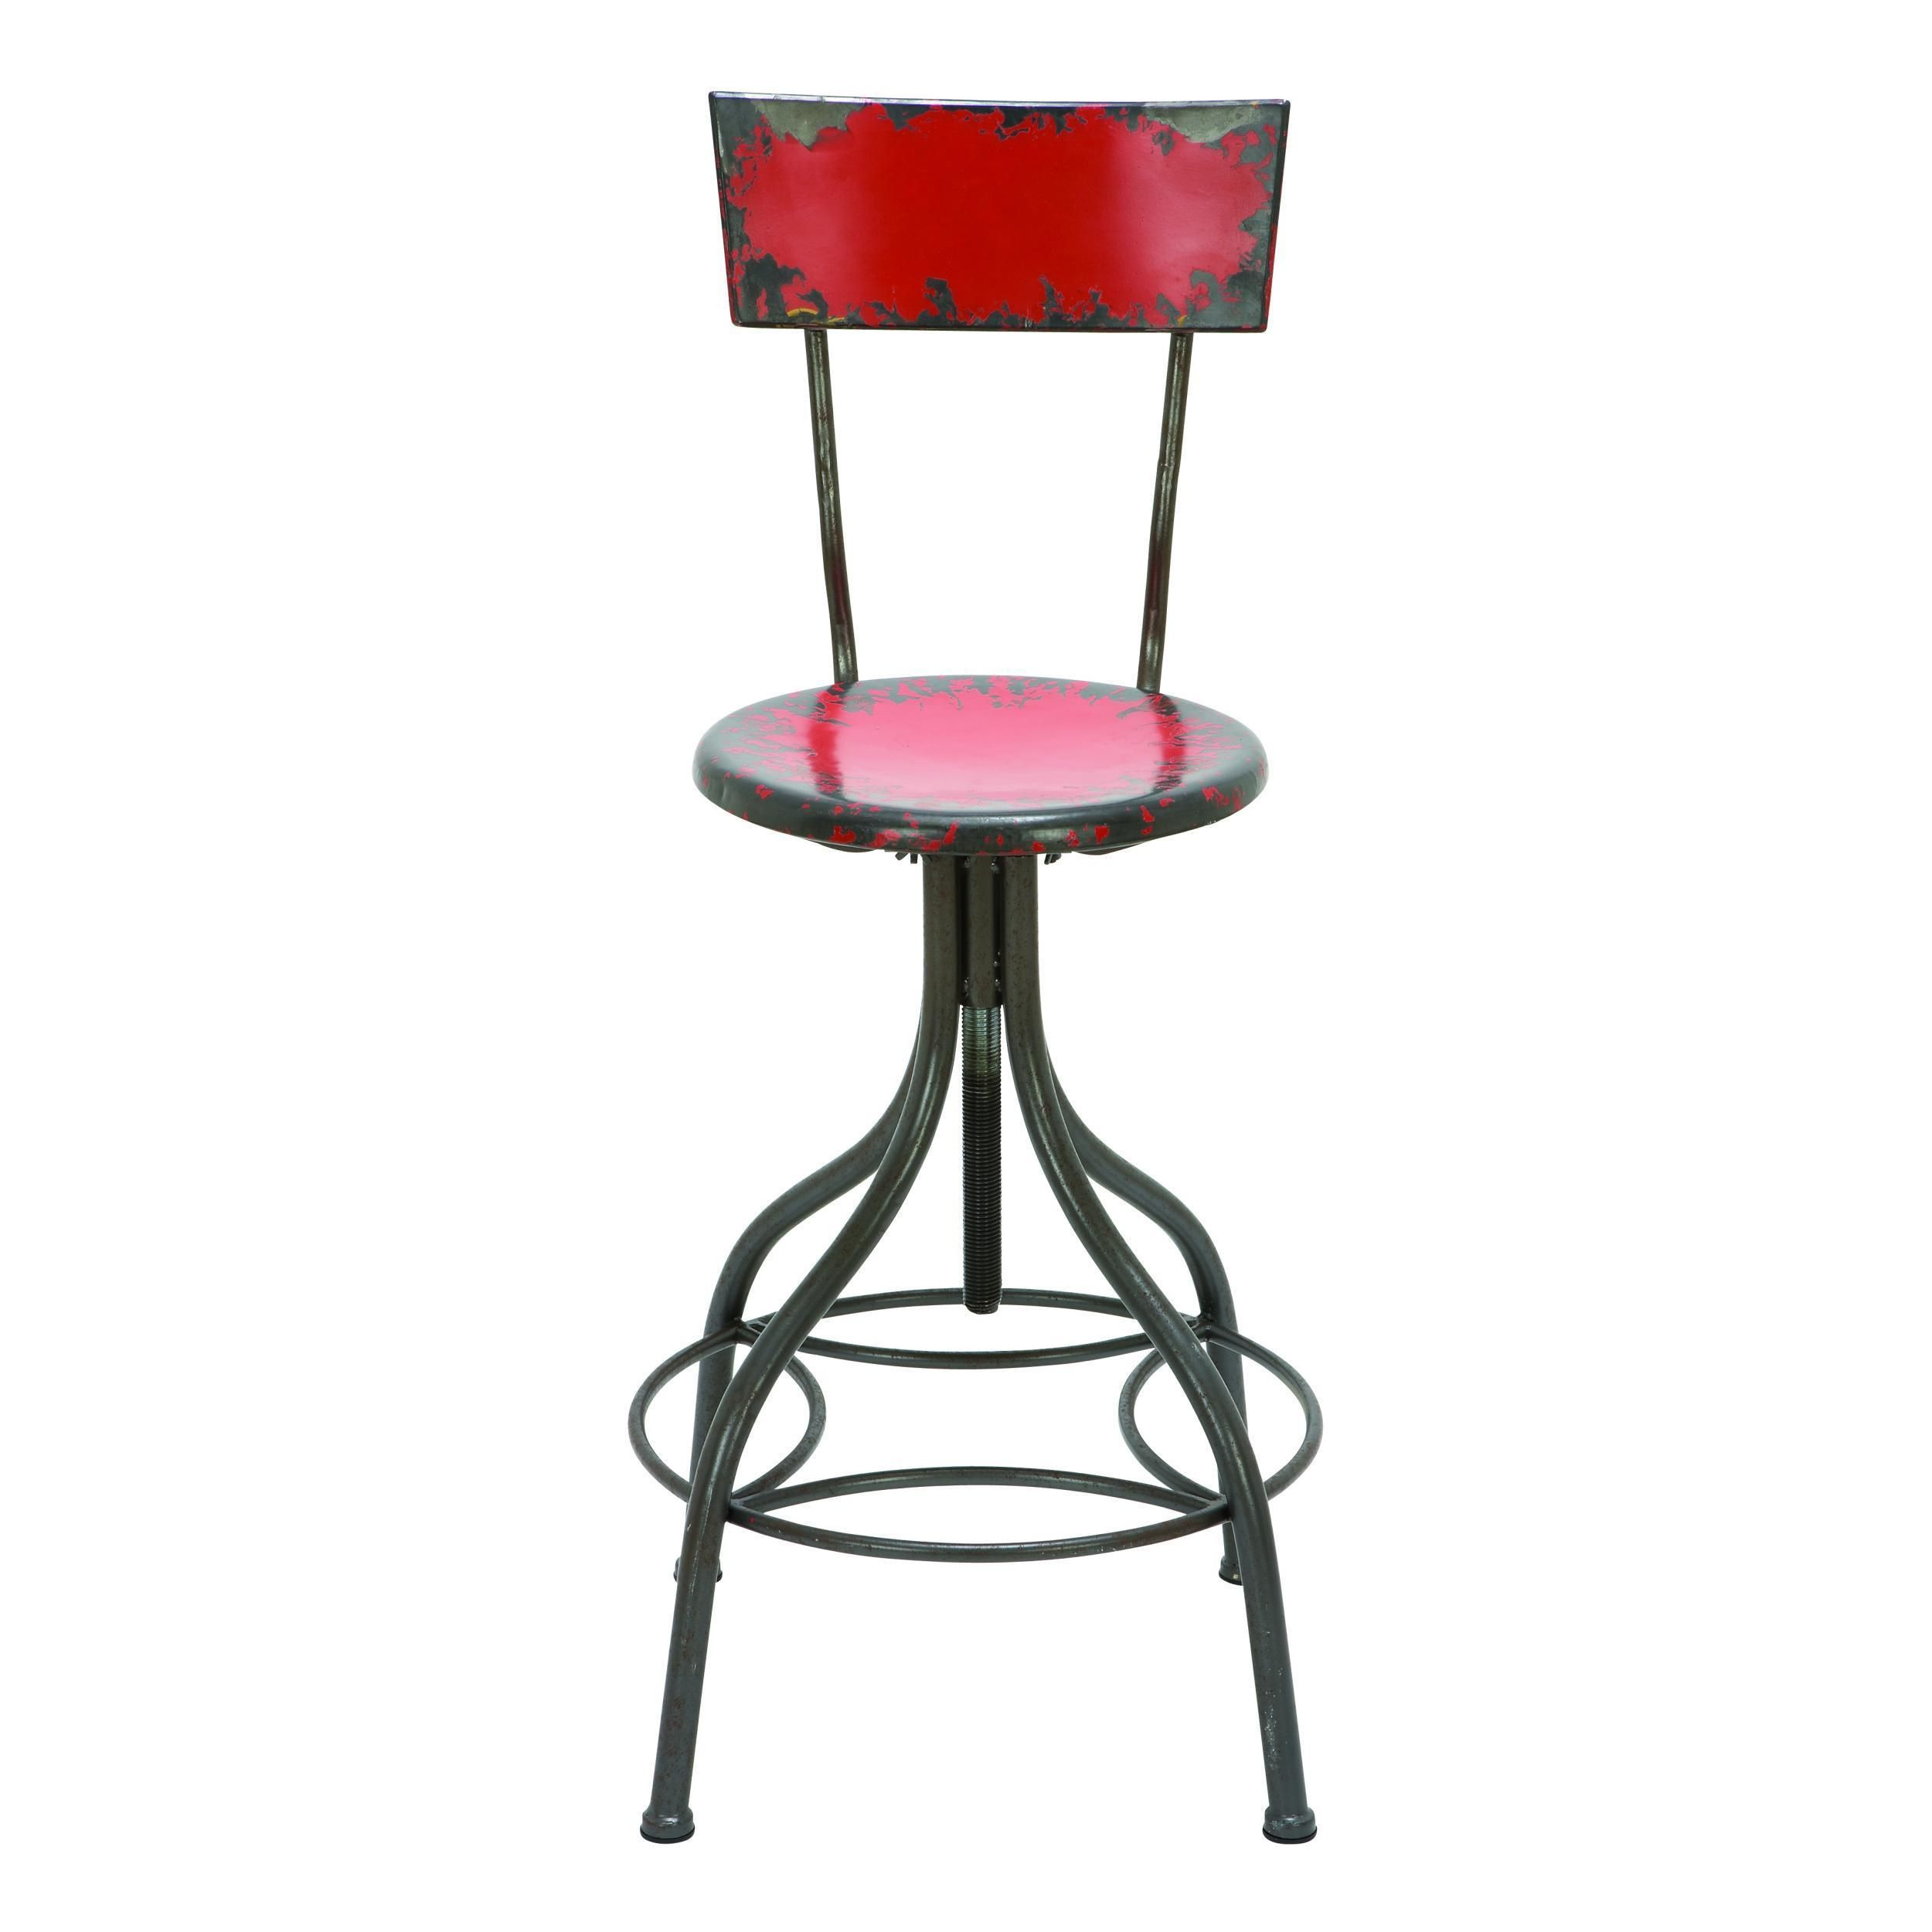 Rustic 41 Inch Distressed Red Adjustable Iron Bar Chair By